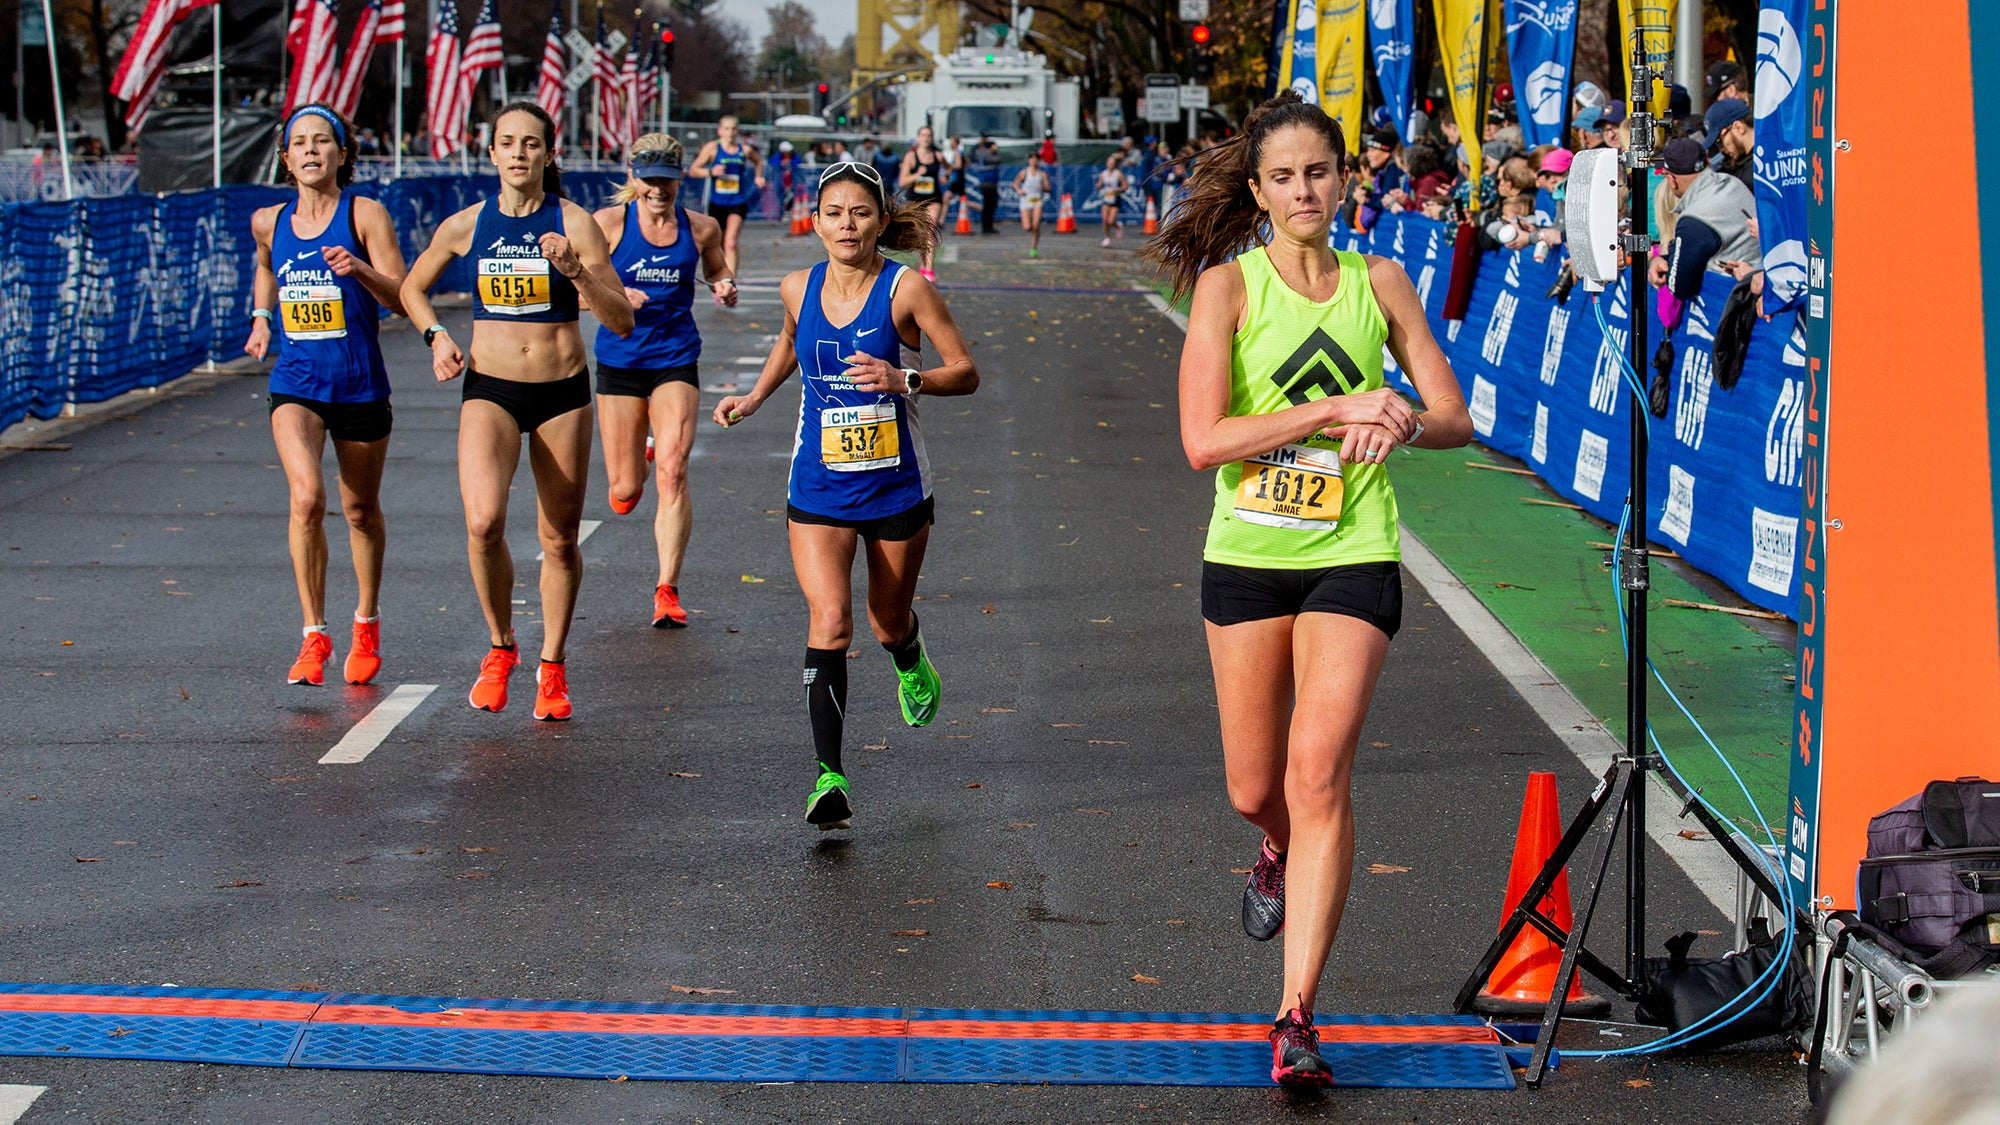 Janae Baron finishing CIM